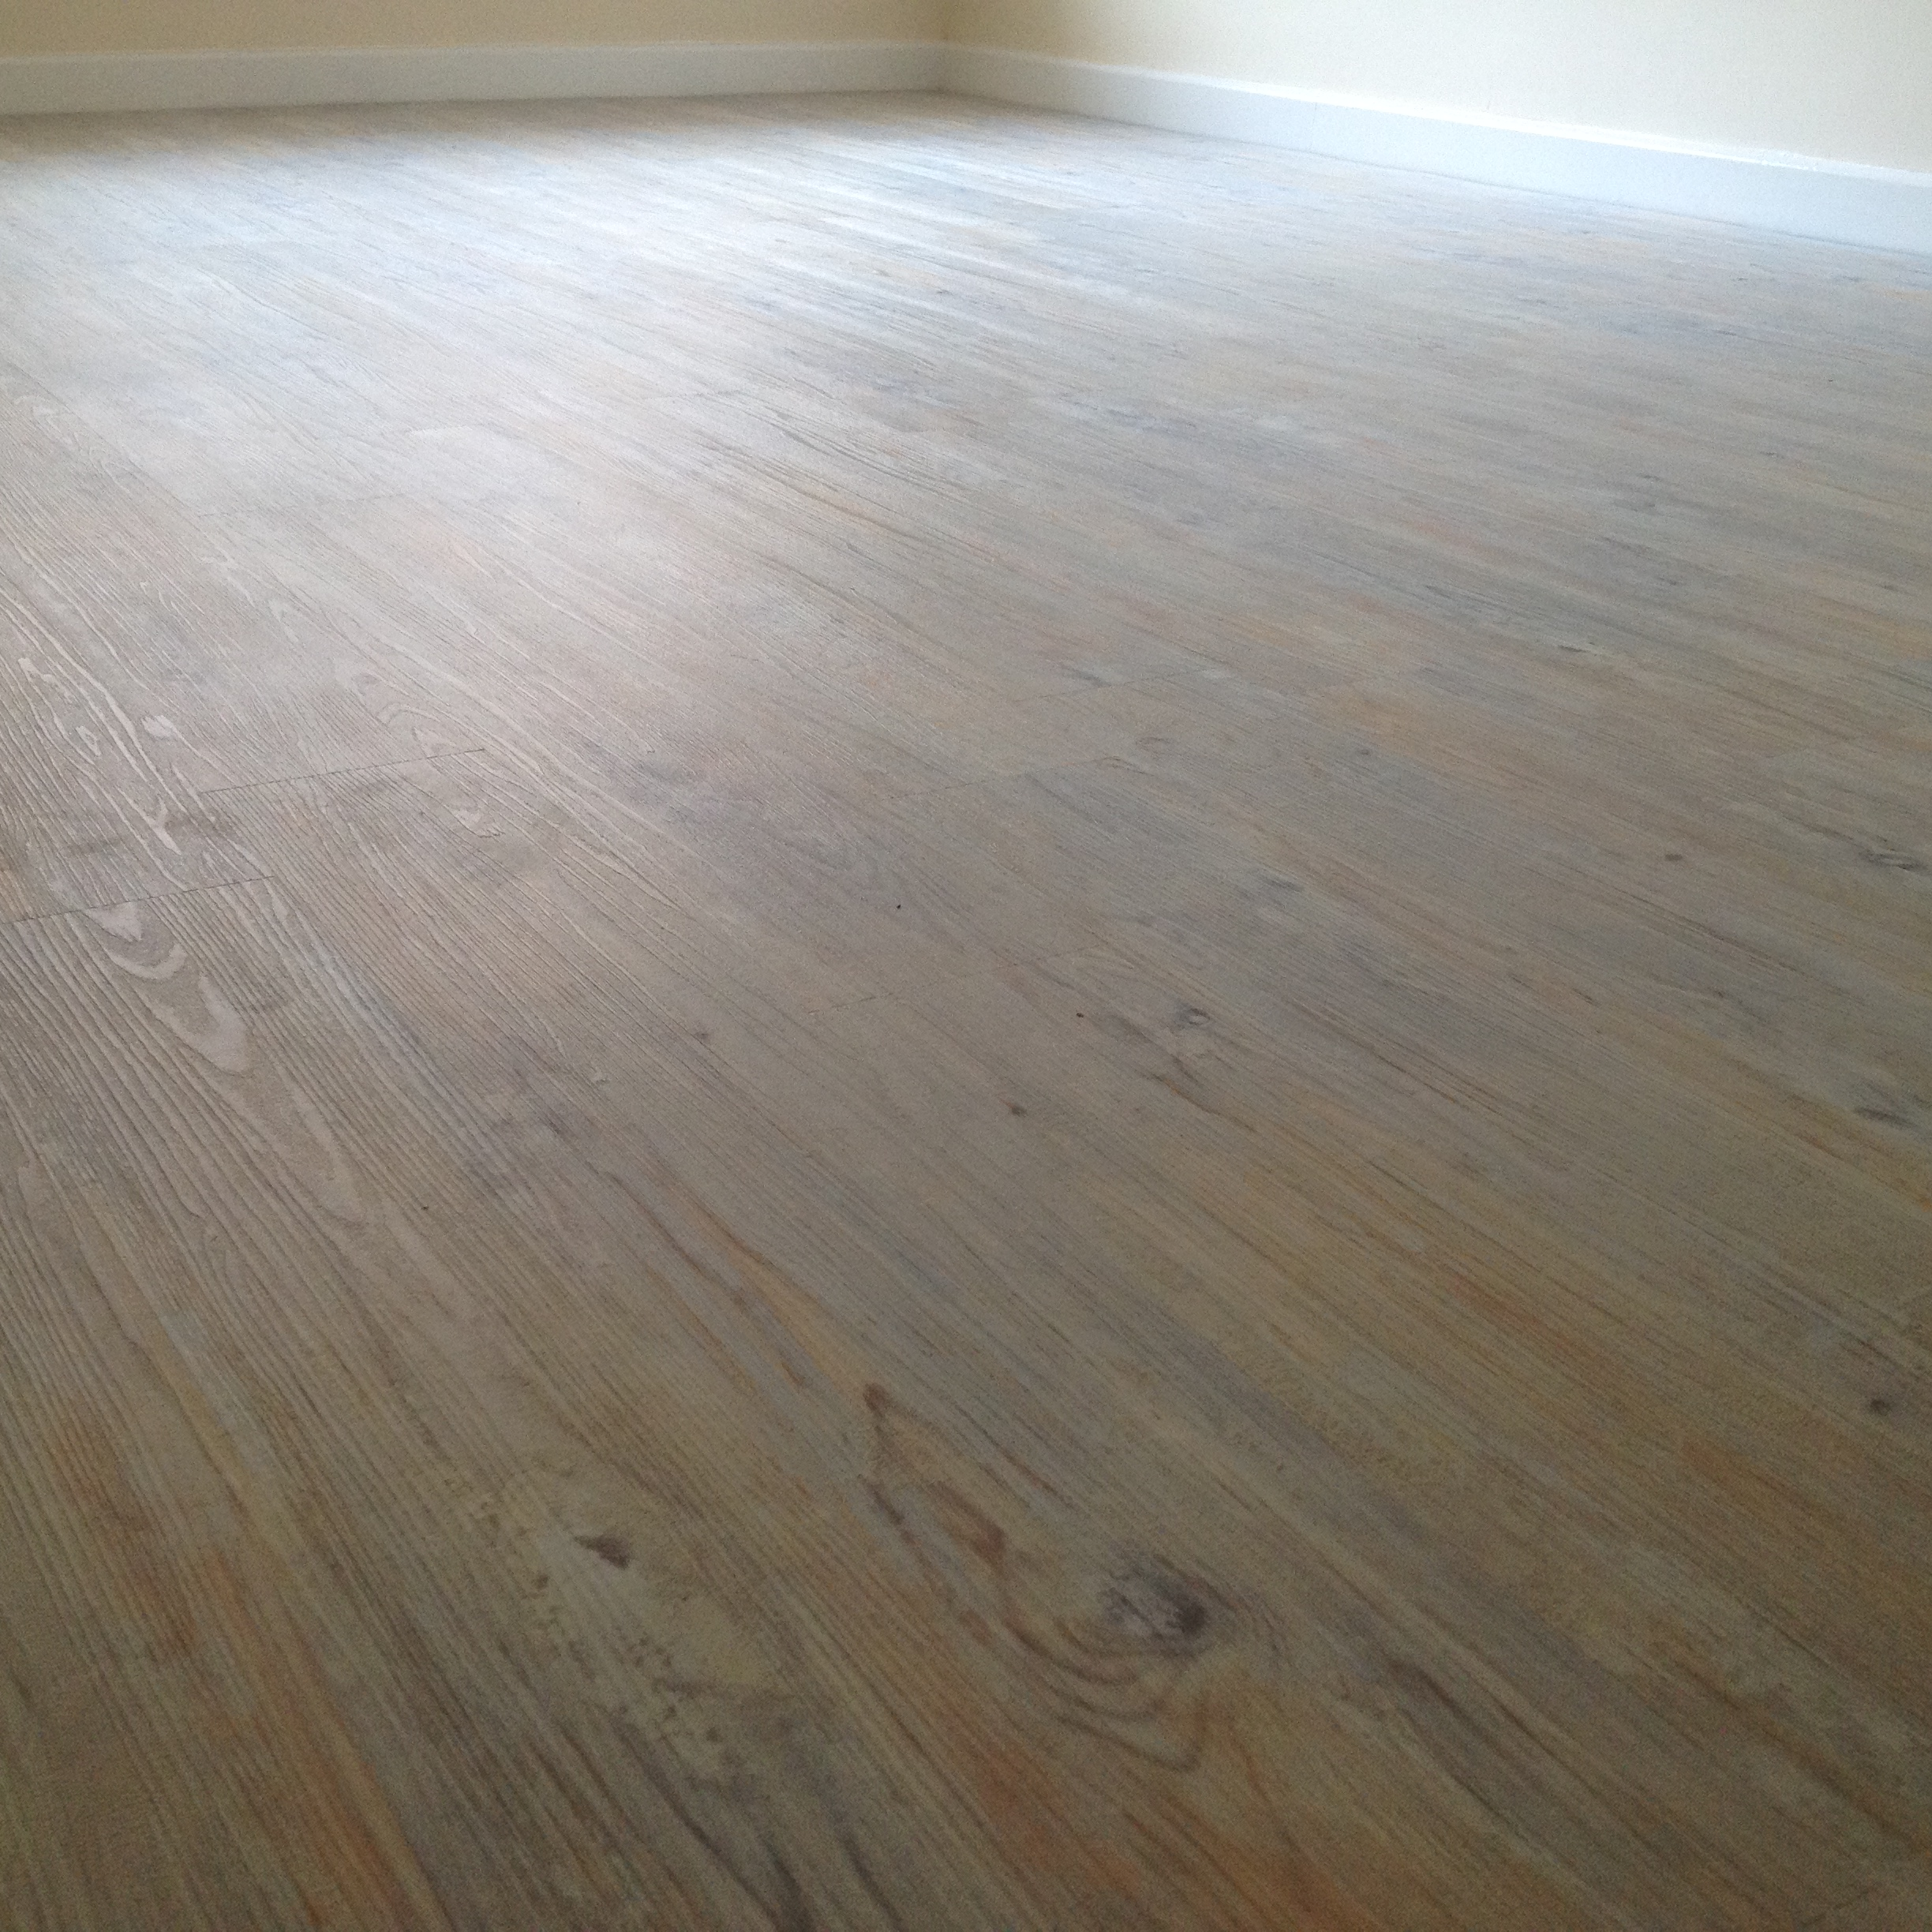 Camaro-Loc LVT Flooring, Smoke Limed Oak (1).JPG